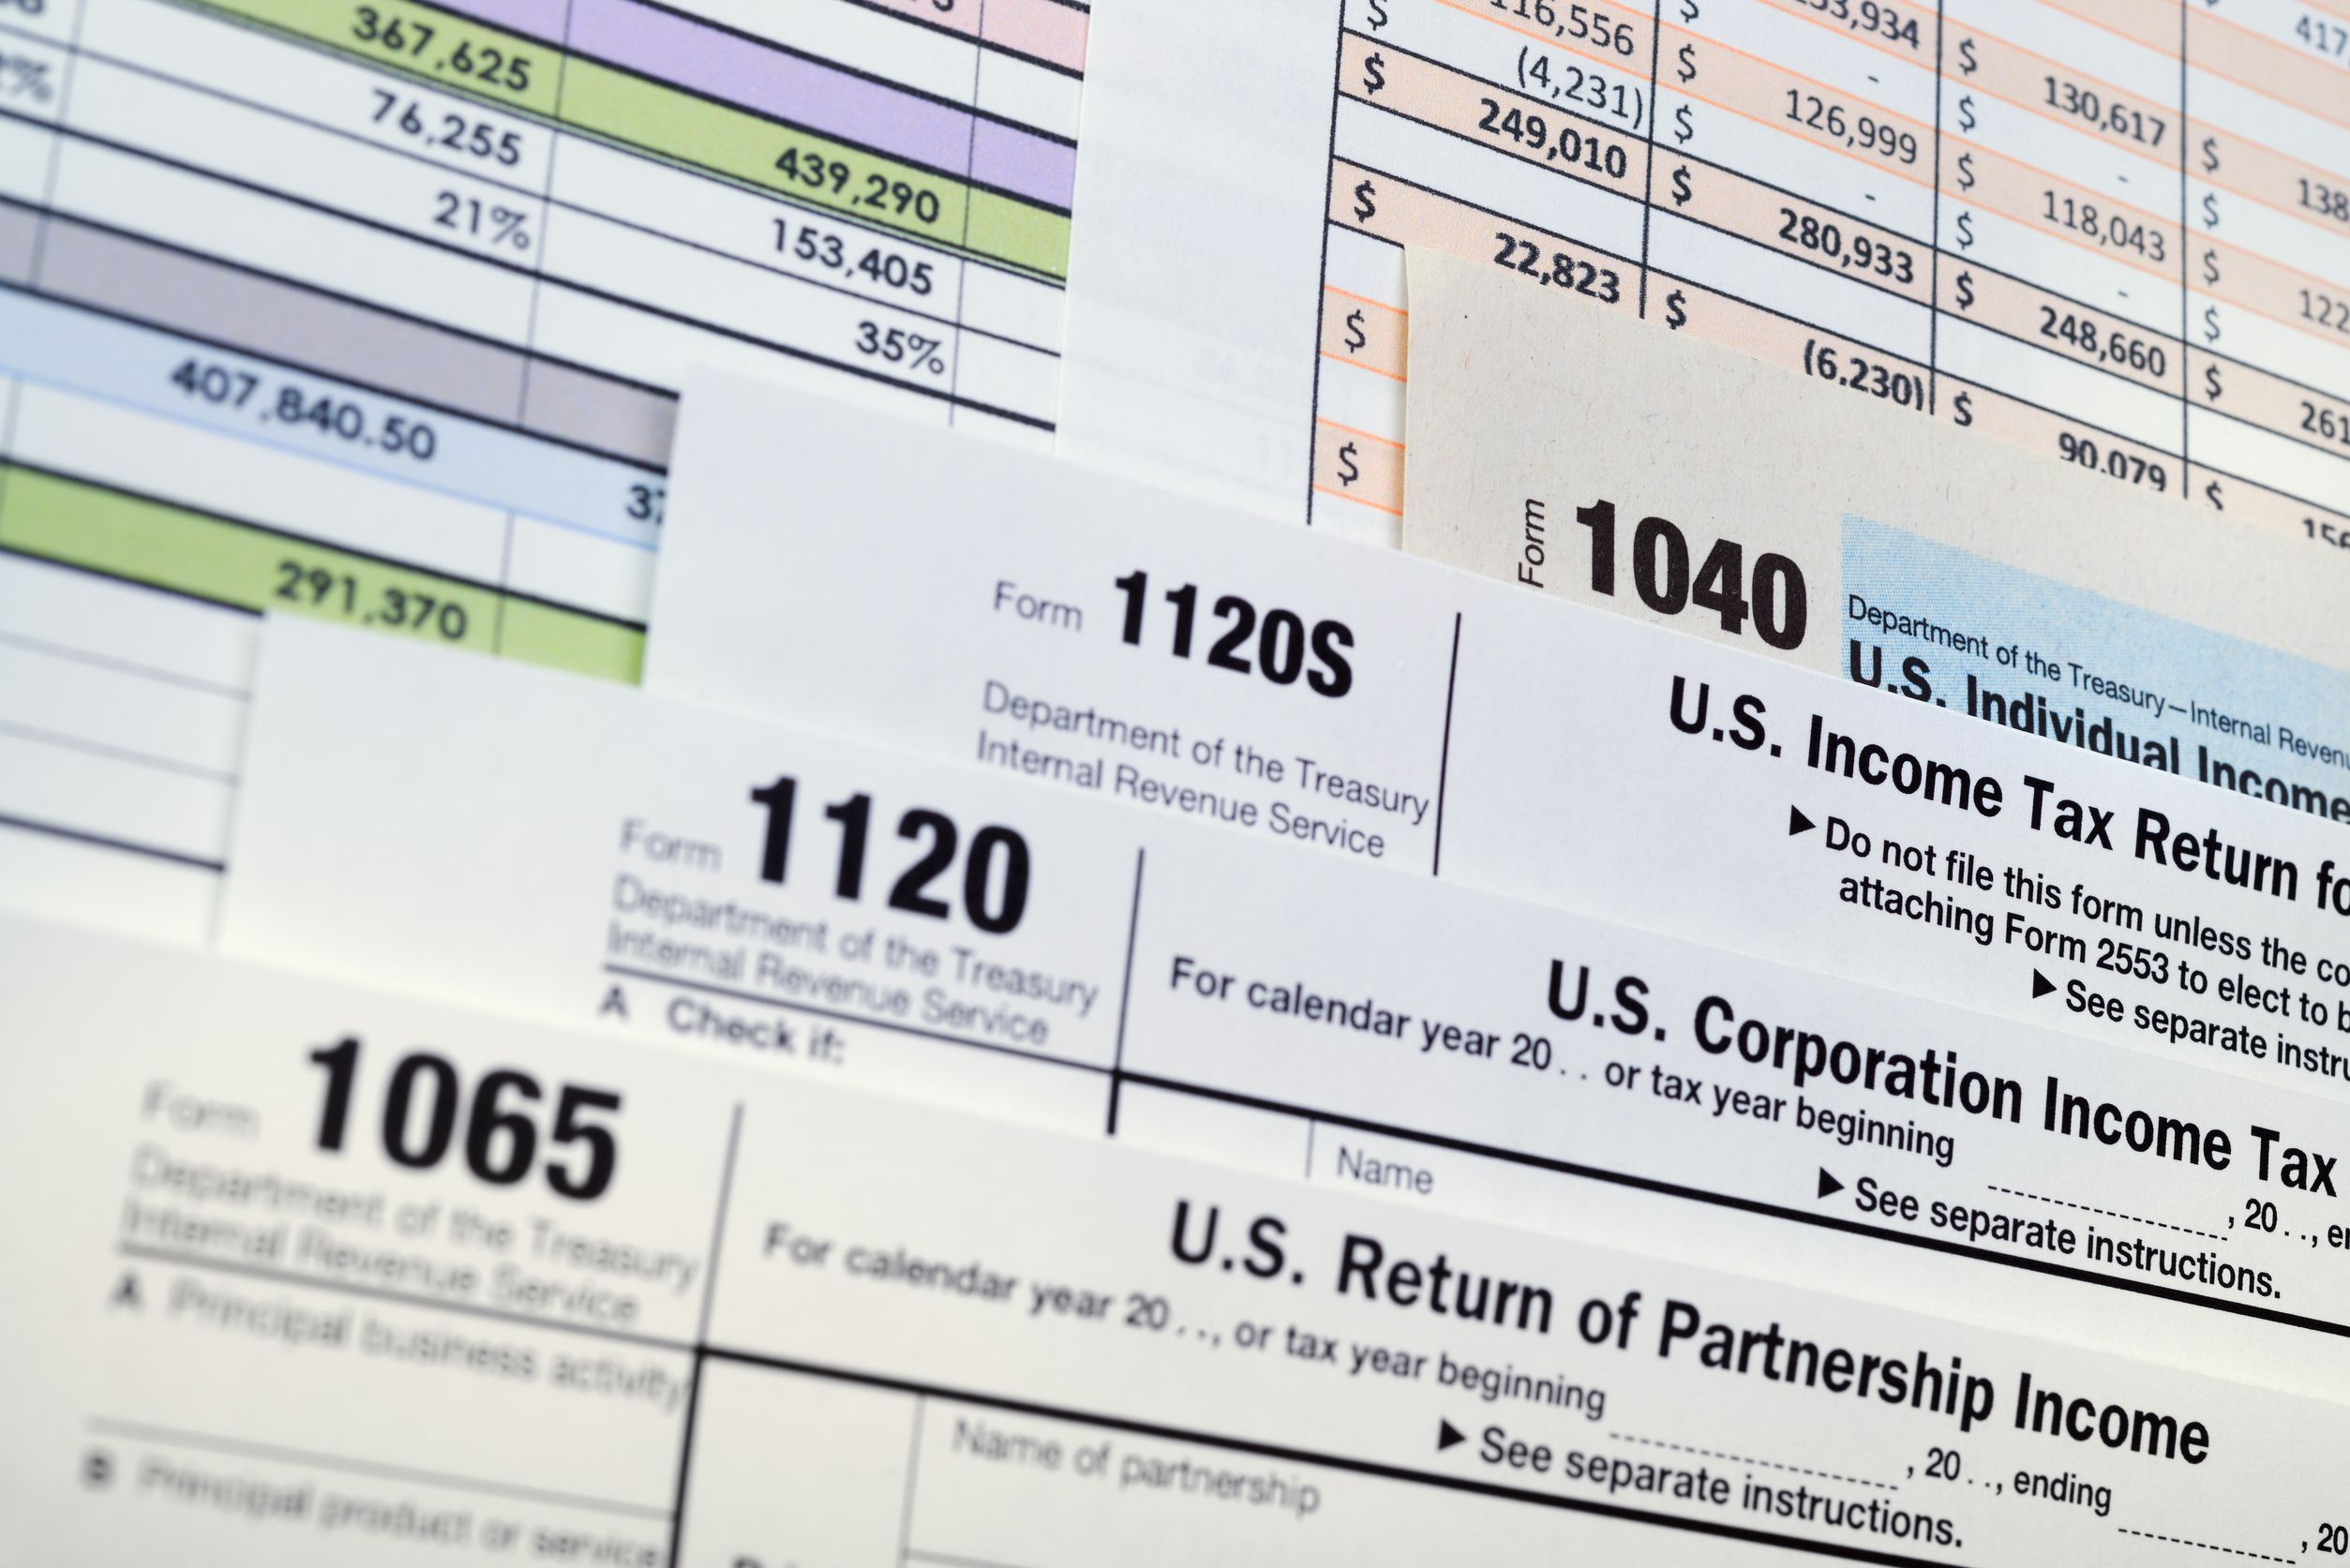 Federal Paperwork Costs as Much as the Deficit